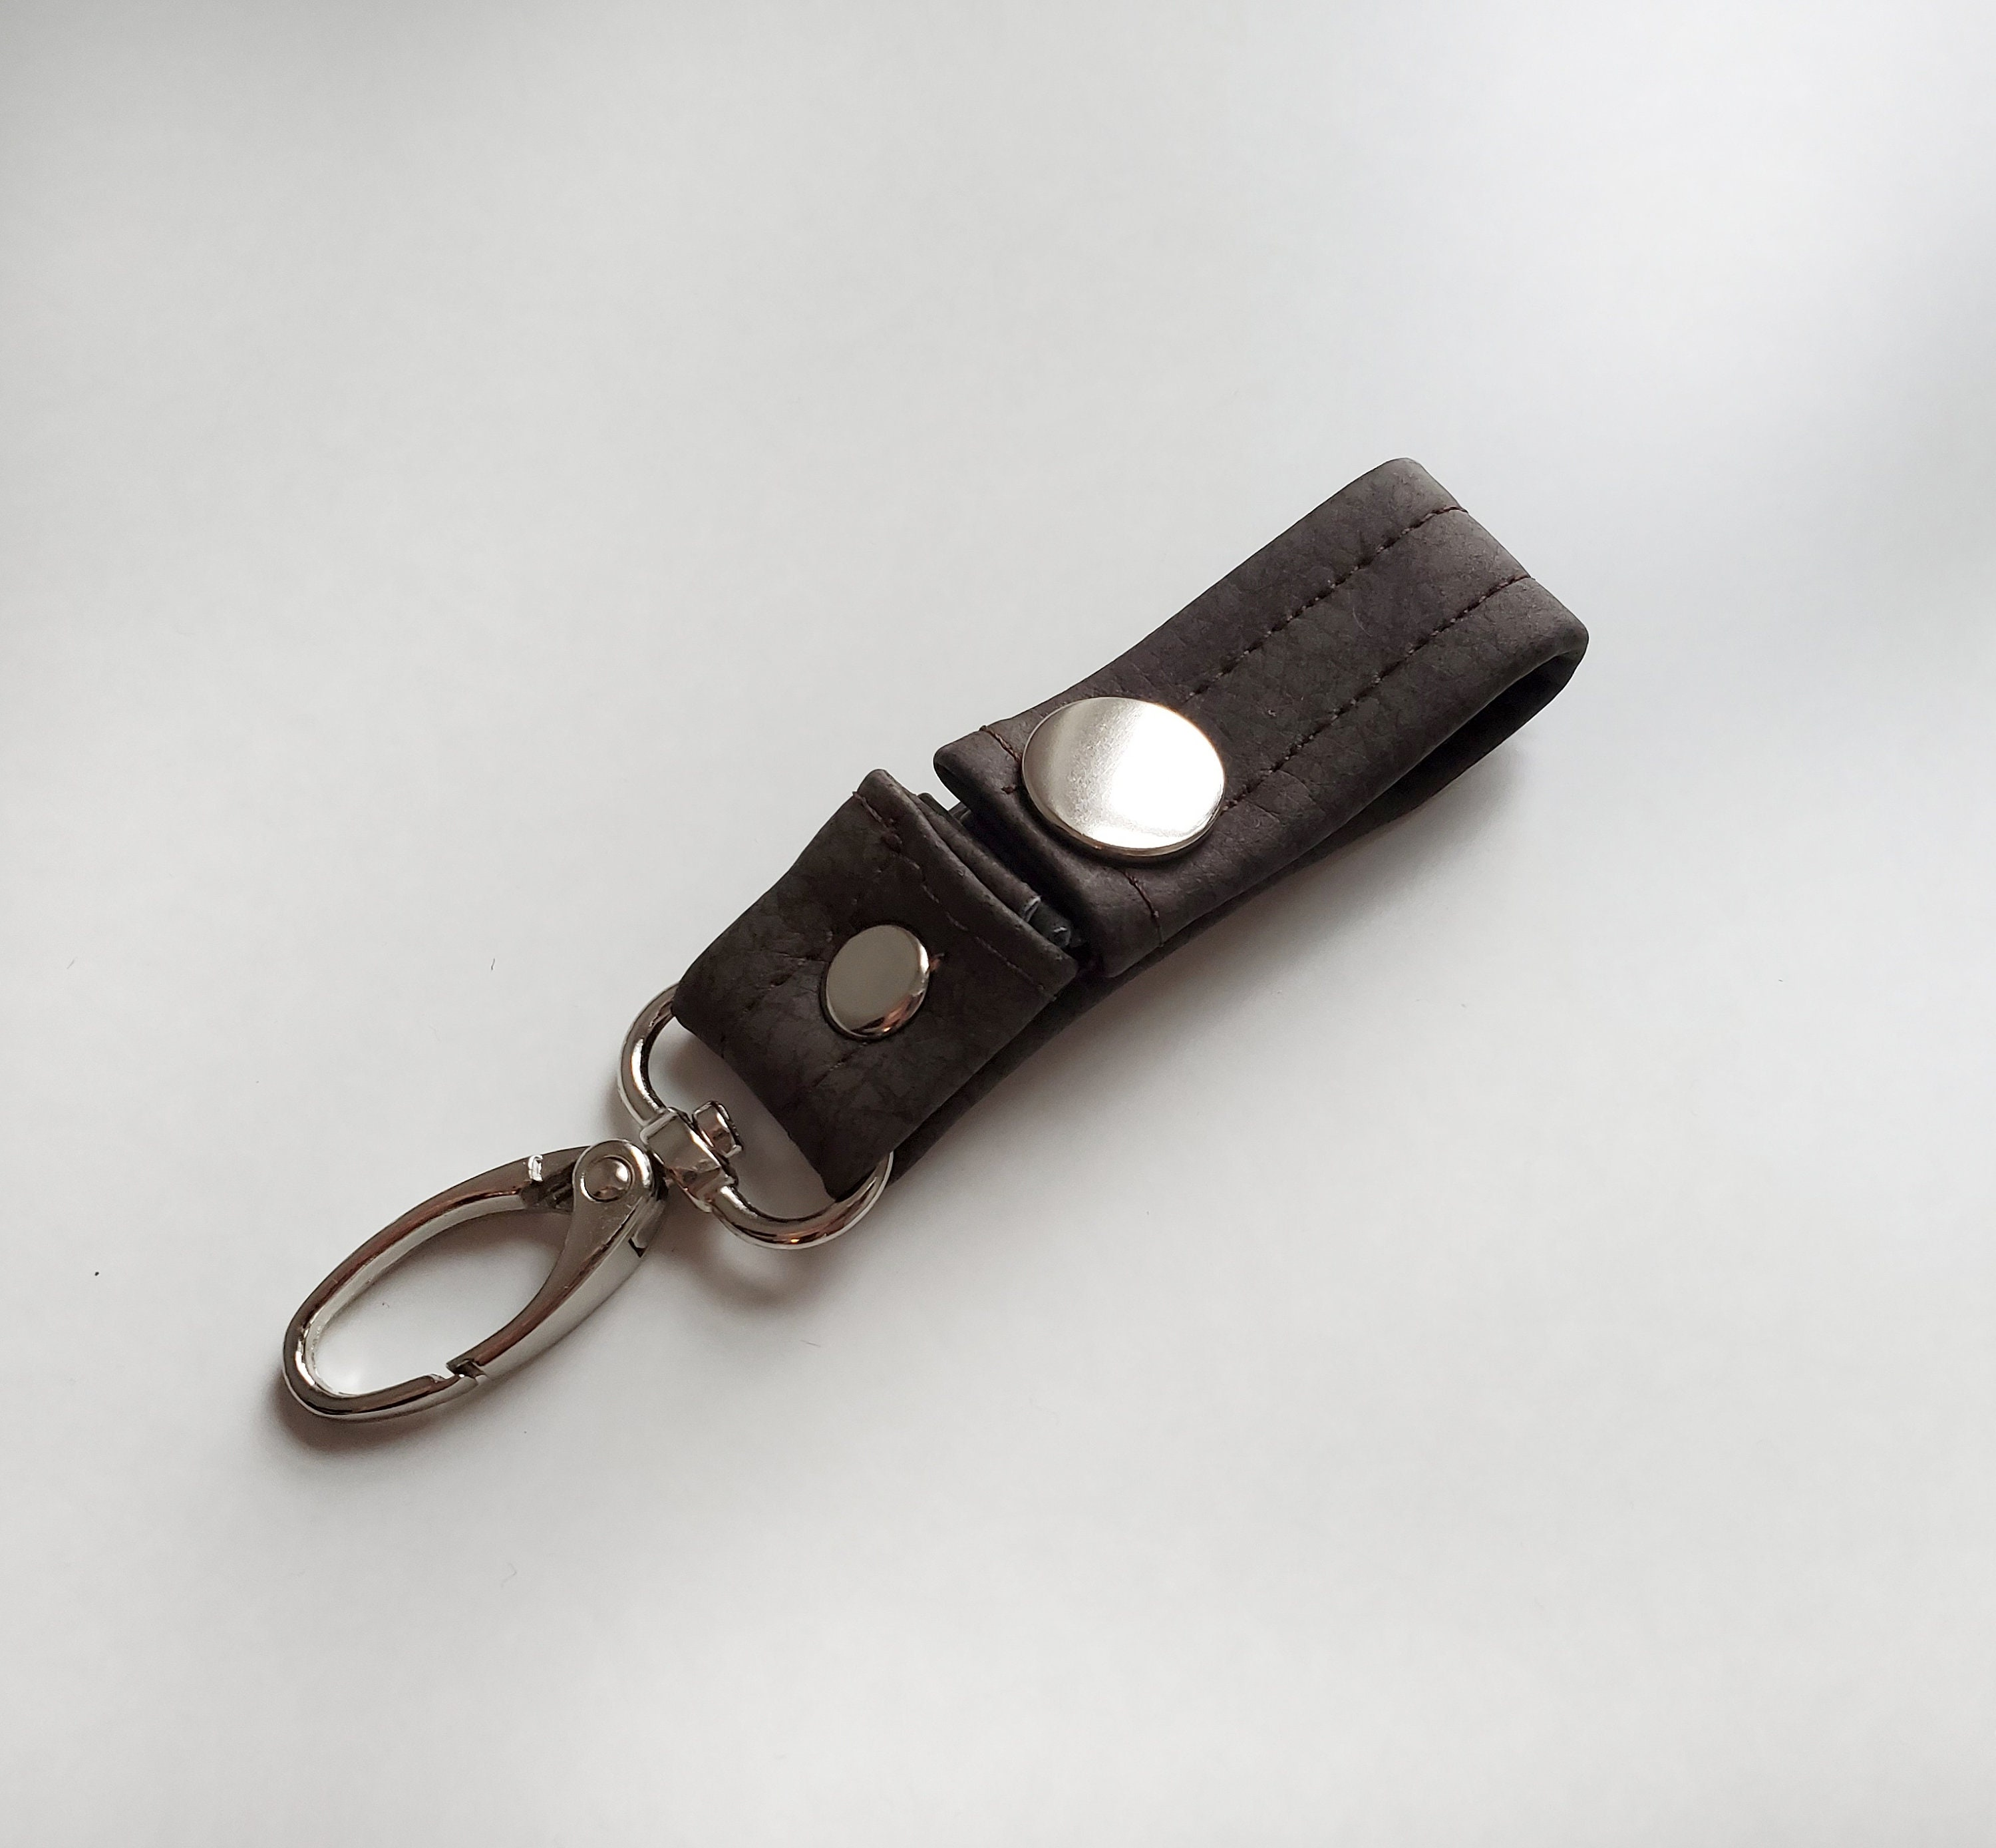 Birthday Gift or Graduation Gift Snap Closure Brown Faux Leather Great Gift Idea Chocolate Brown Vegan Leather Key Chain